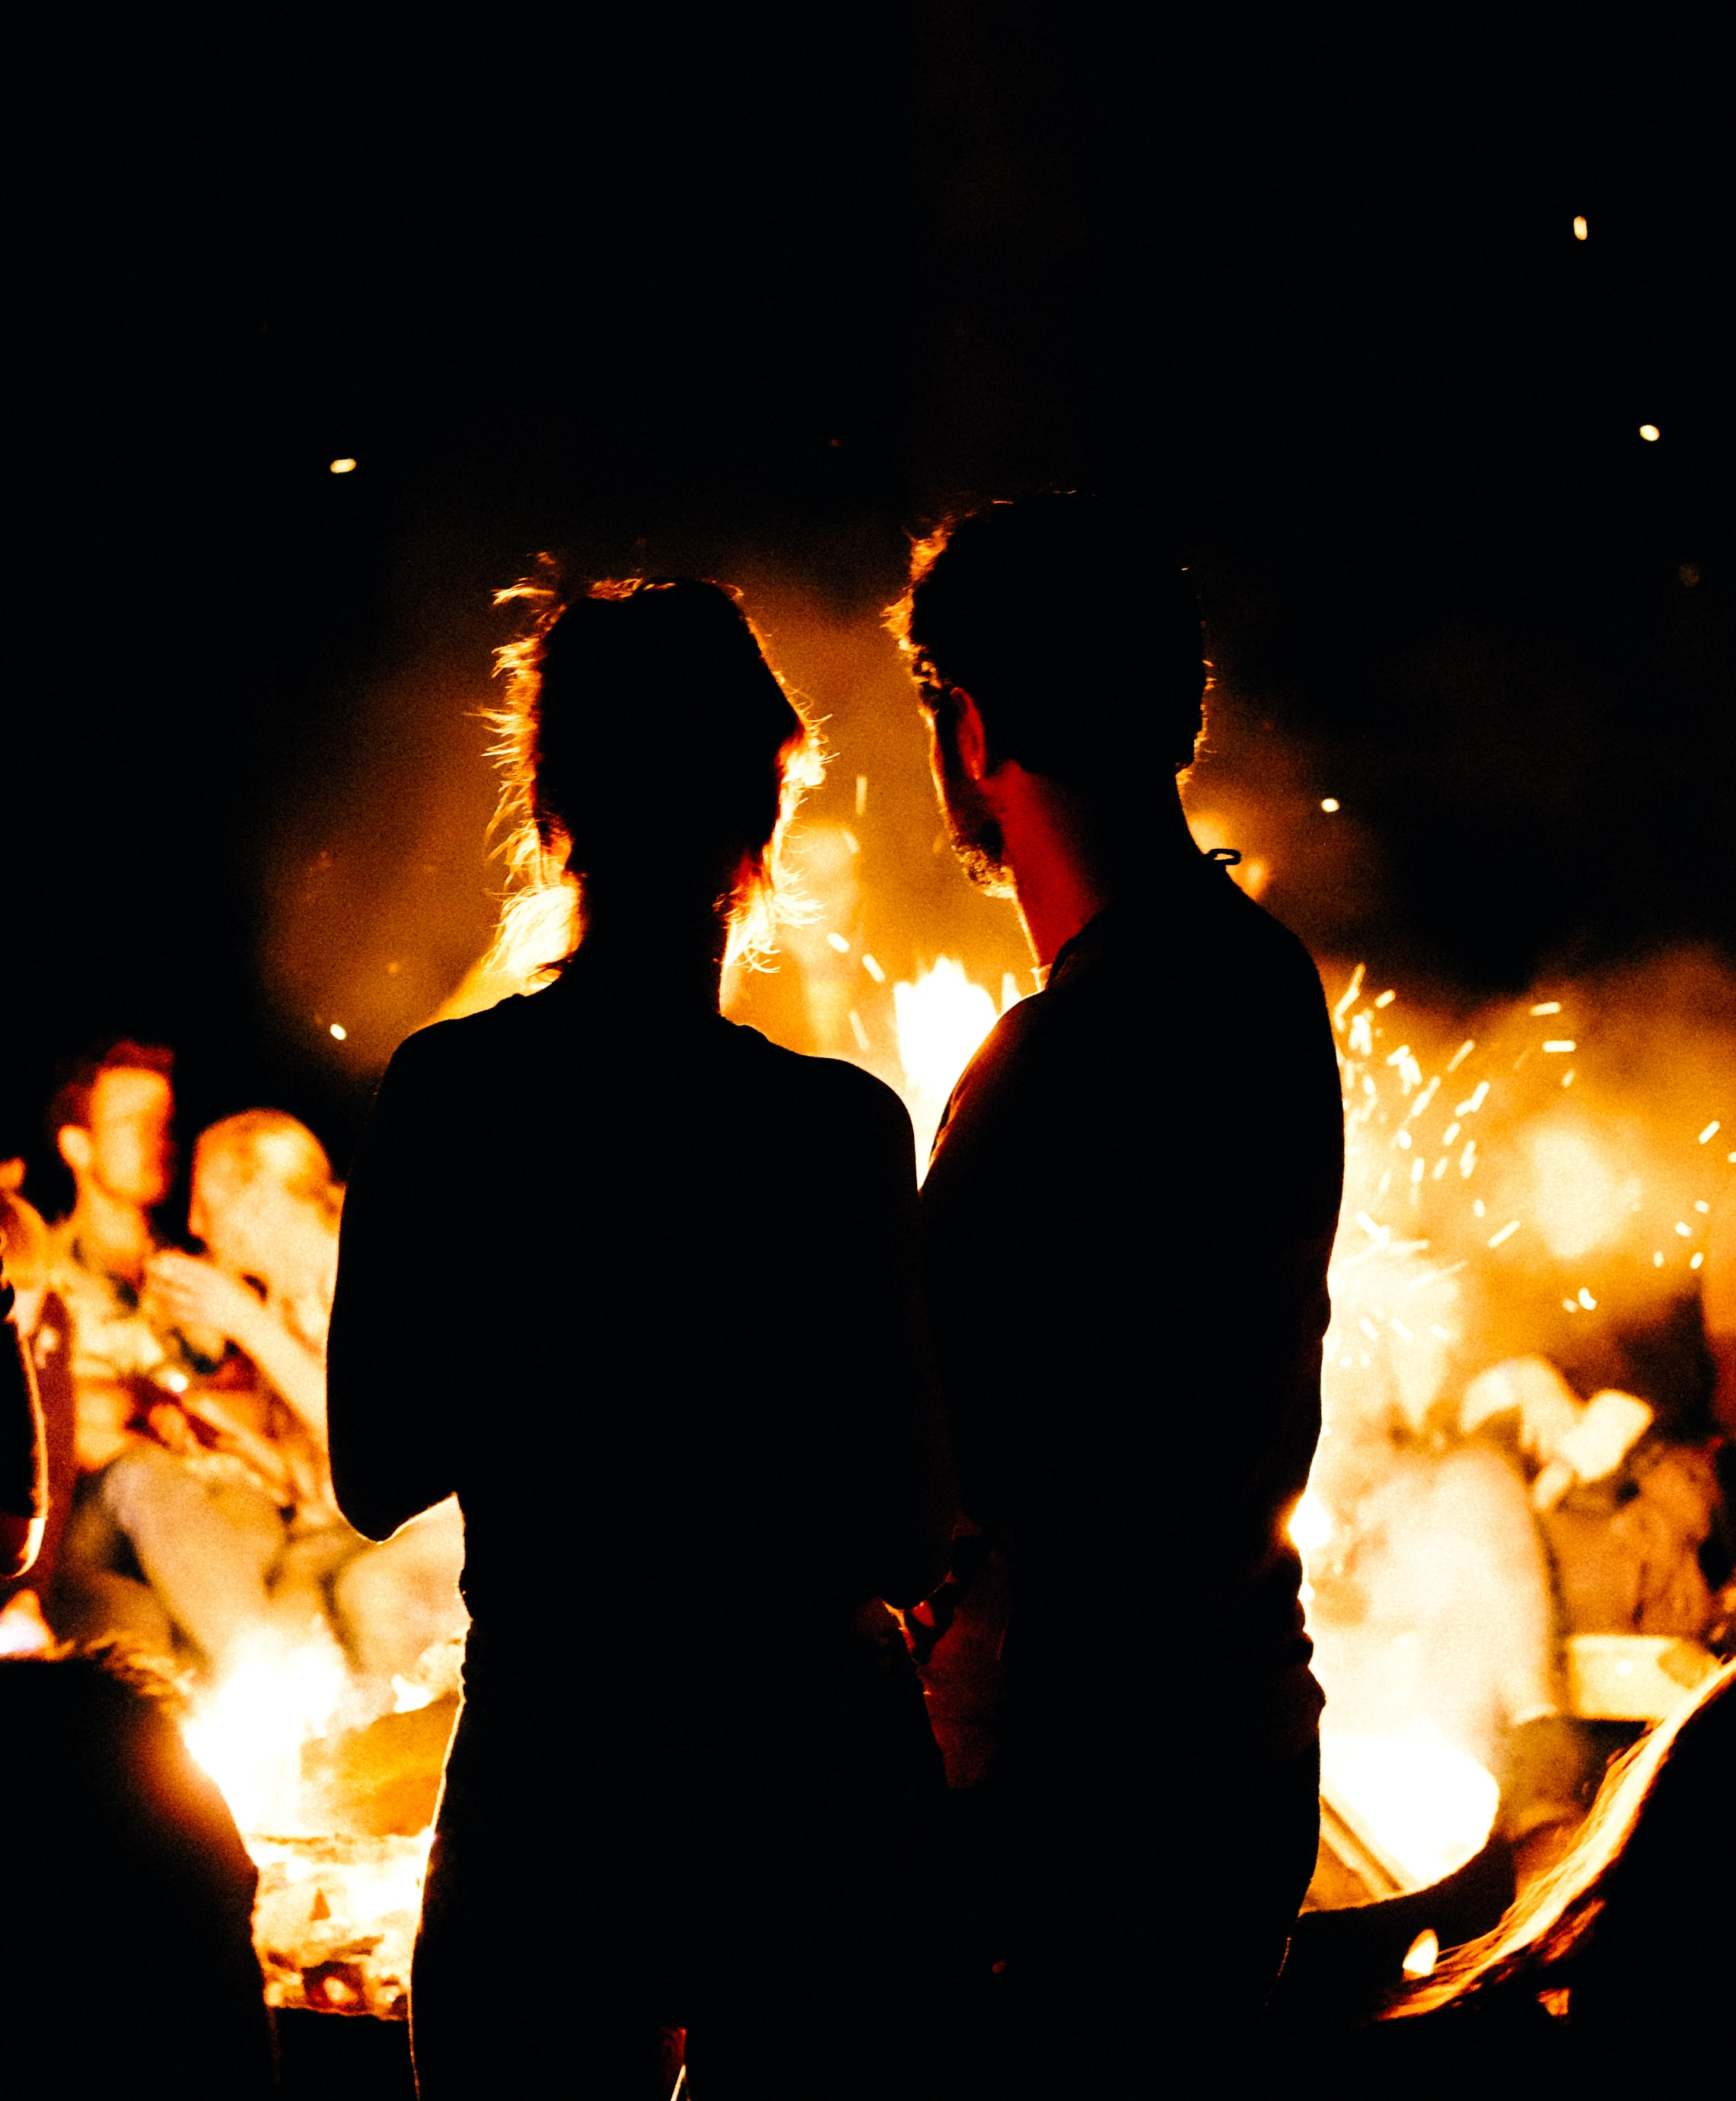 FIRE COUPLE